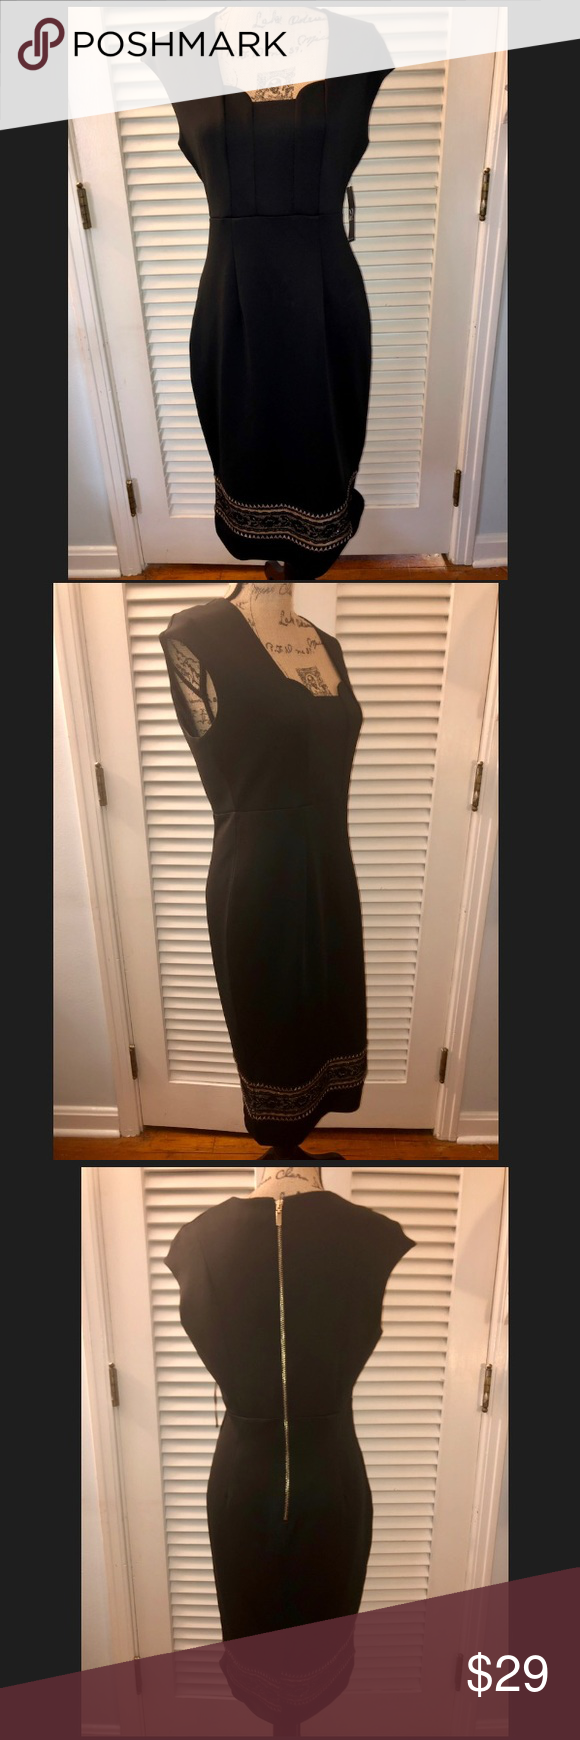 Nwt Ny Co Black Dress With Gold Lace Trim Nwt Black Dress Black Dresses Classy Dresses